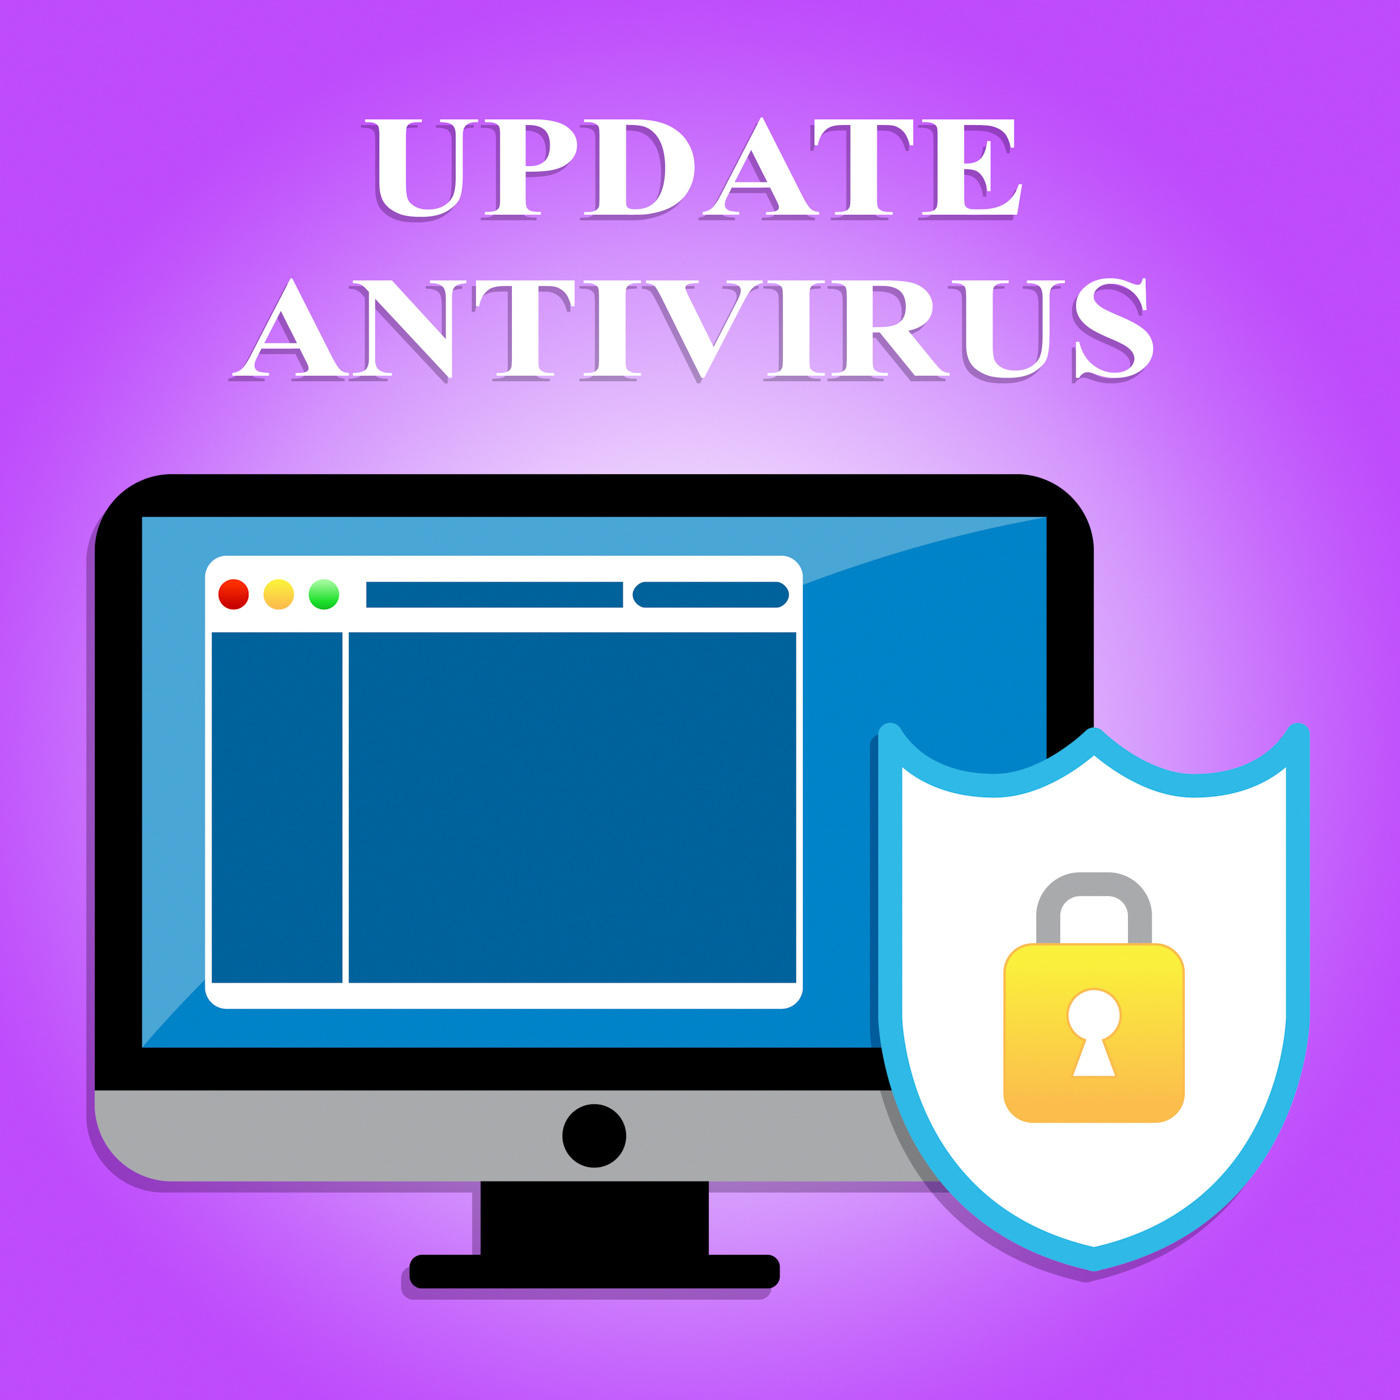 Update antivirus means malicious software and hack photo